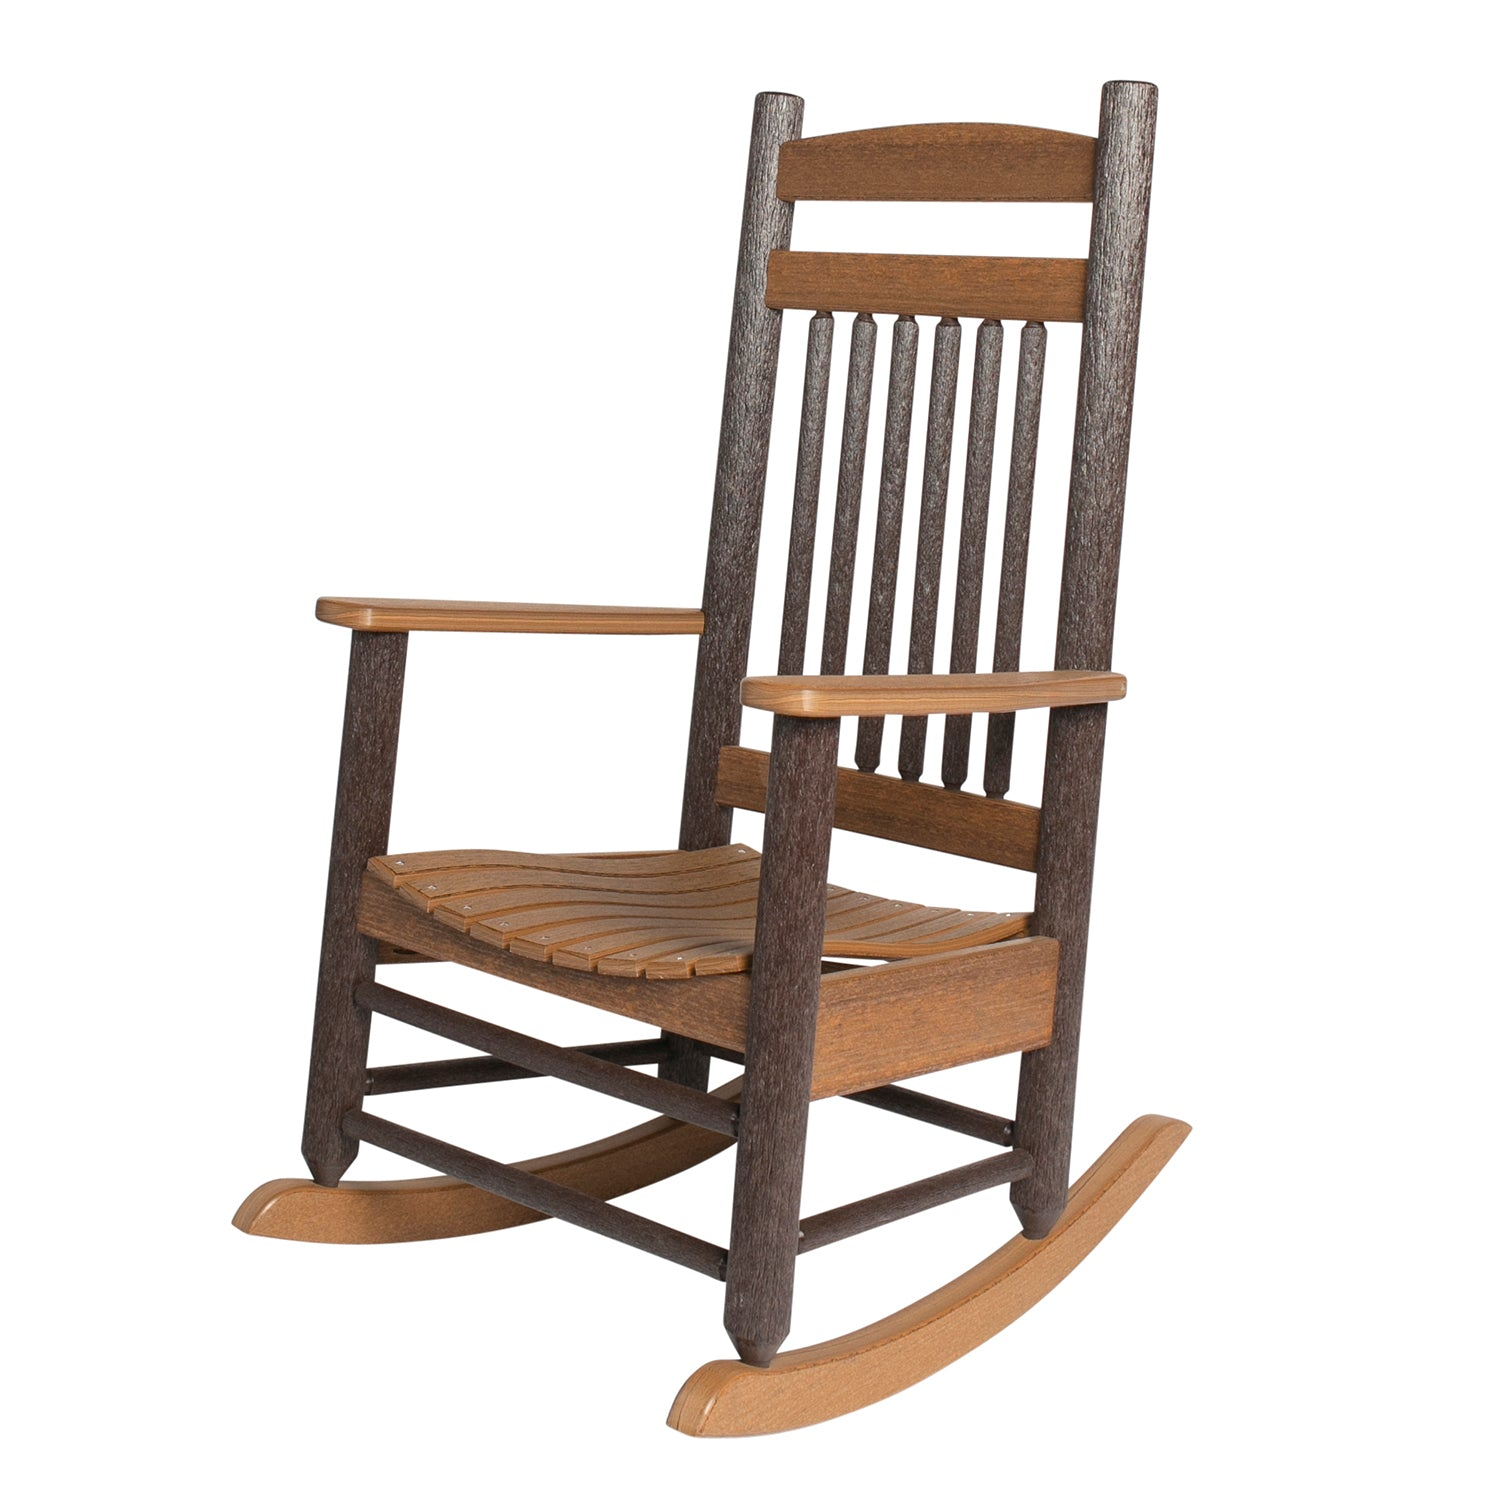 Americana Rustic PolyLog Rocking Chair